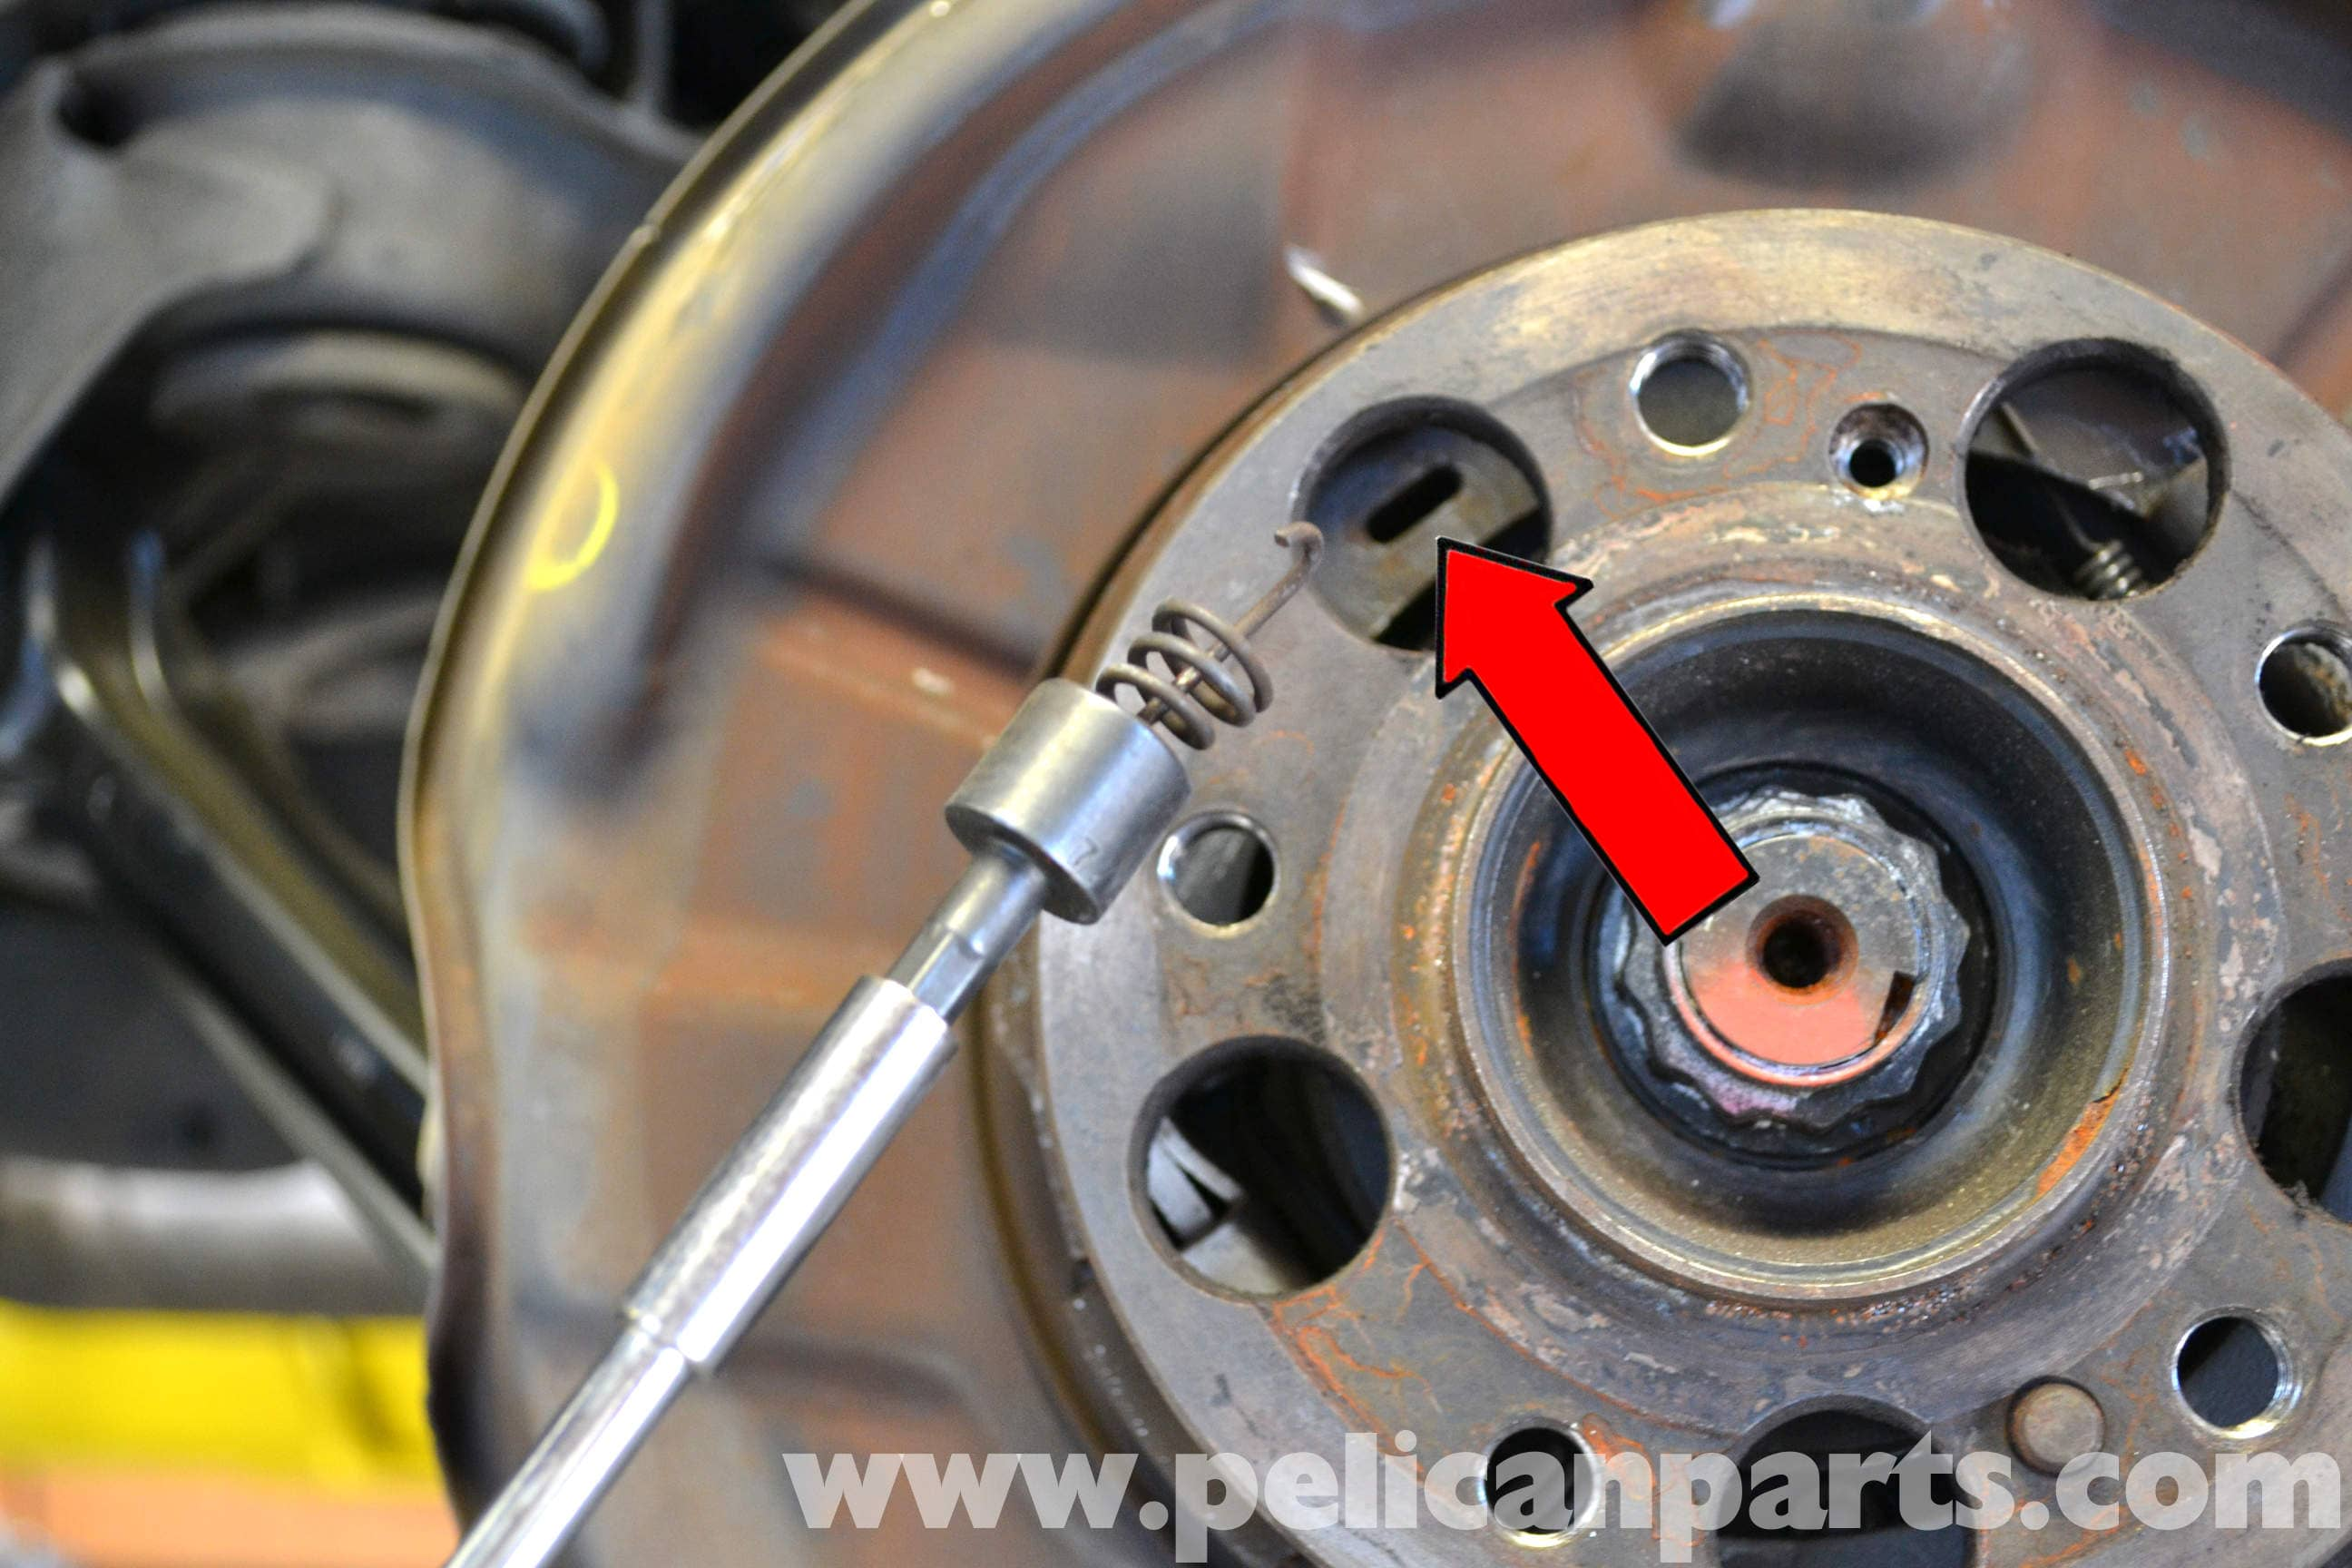 How To Replace Parking Brake Shoes On Chevy Silverado Style Guru Shoe Schematic Mercedes Diagram Circuit Connection